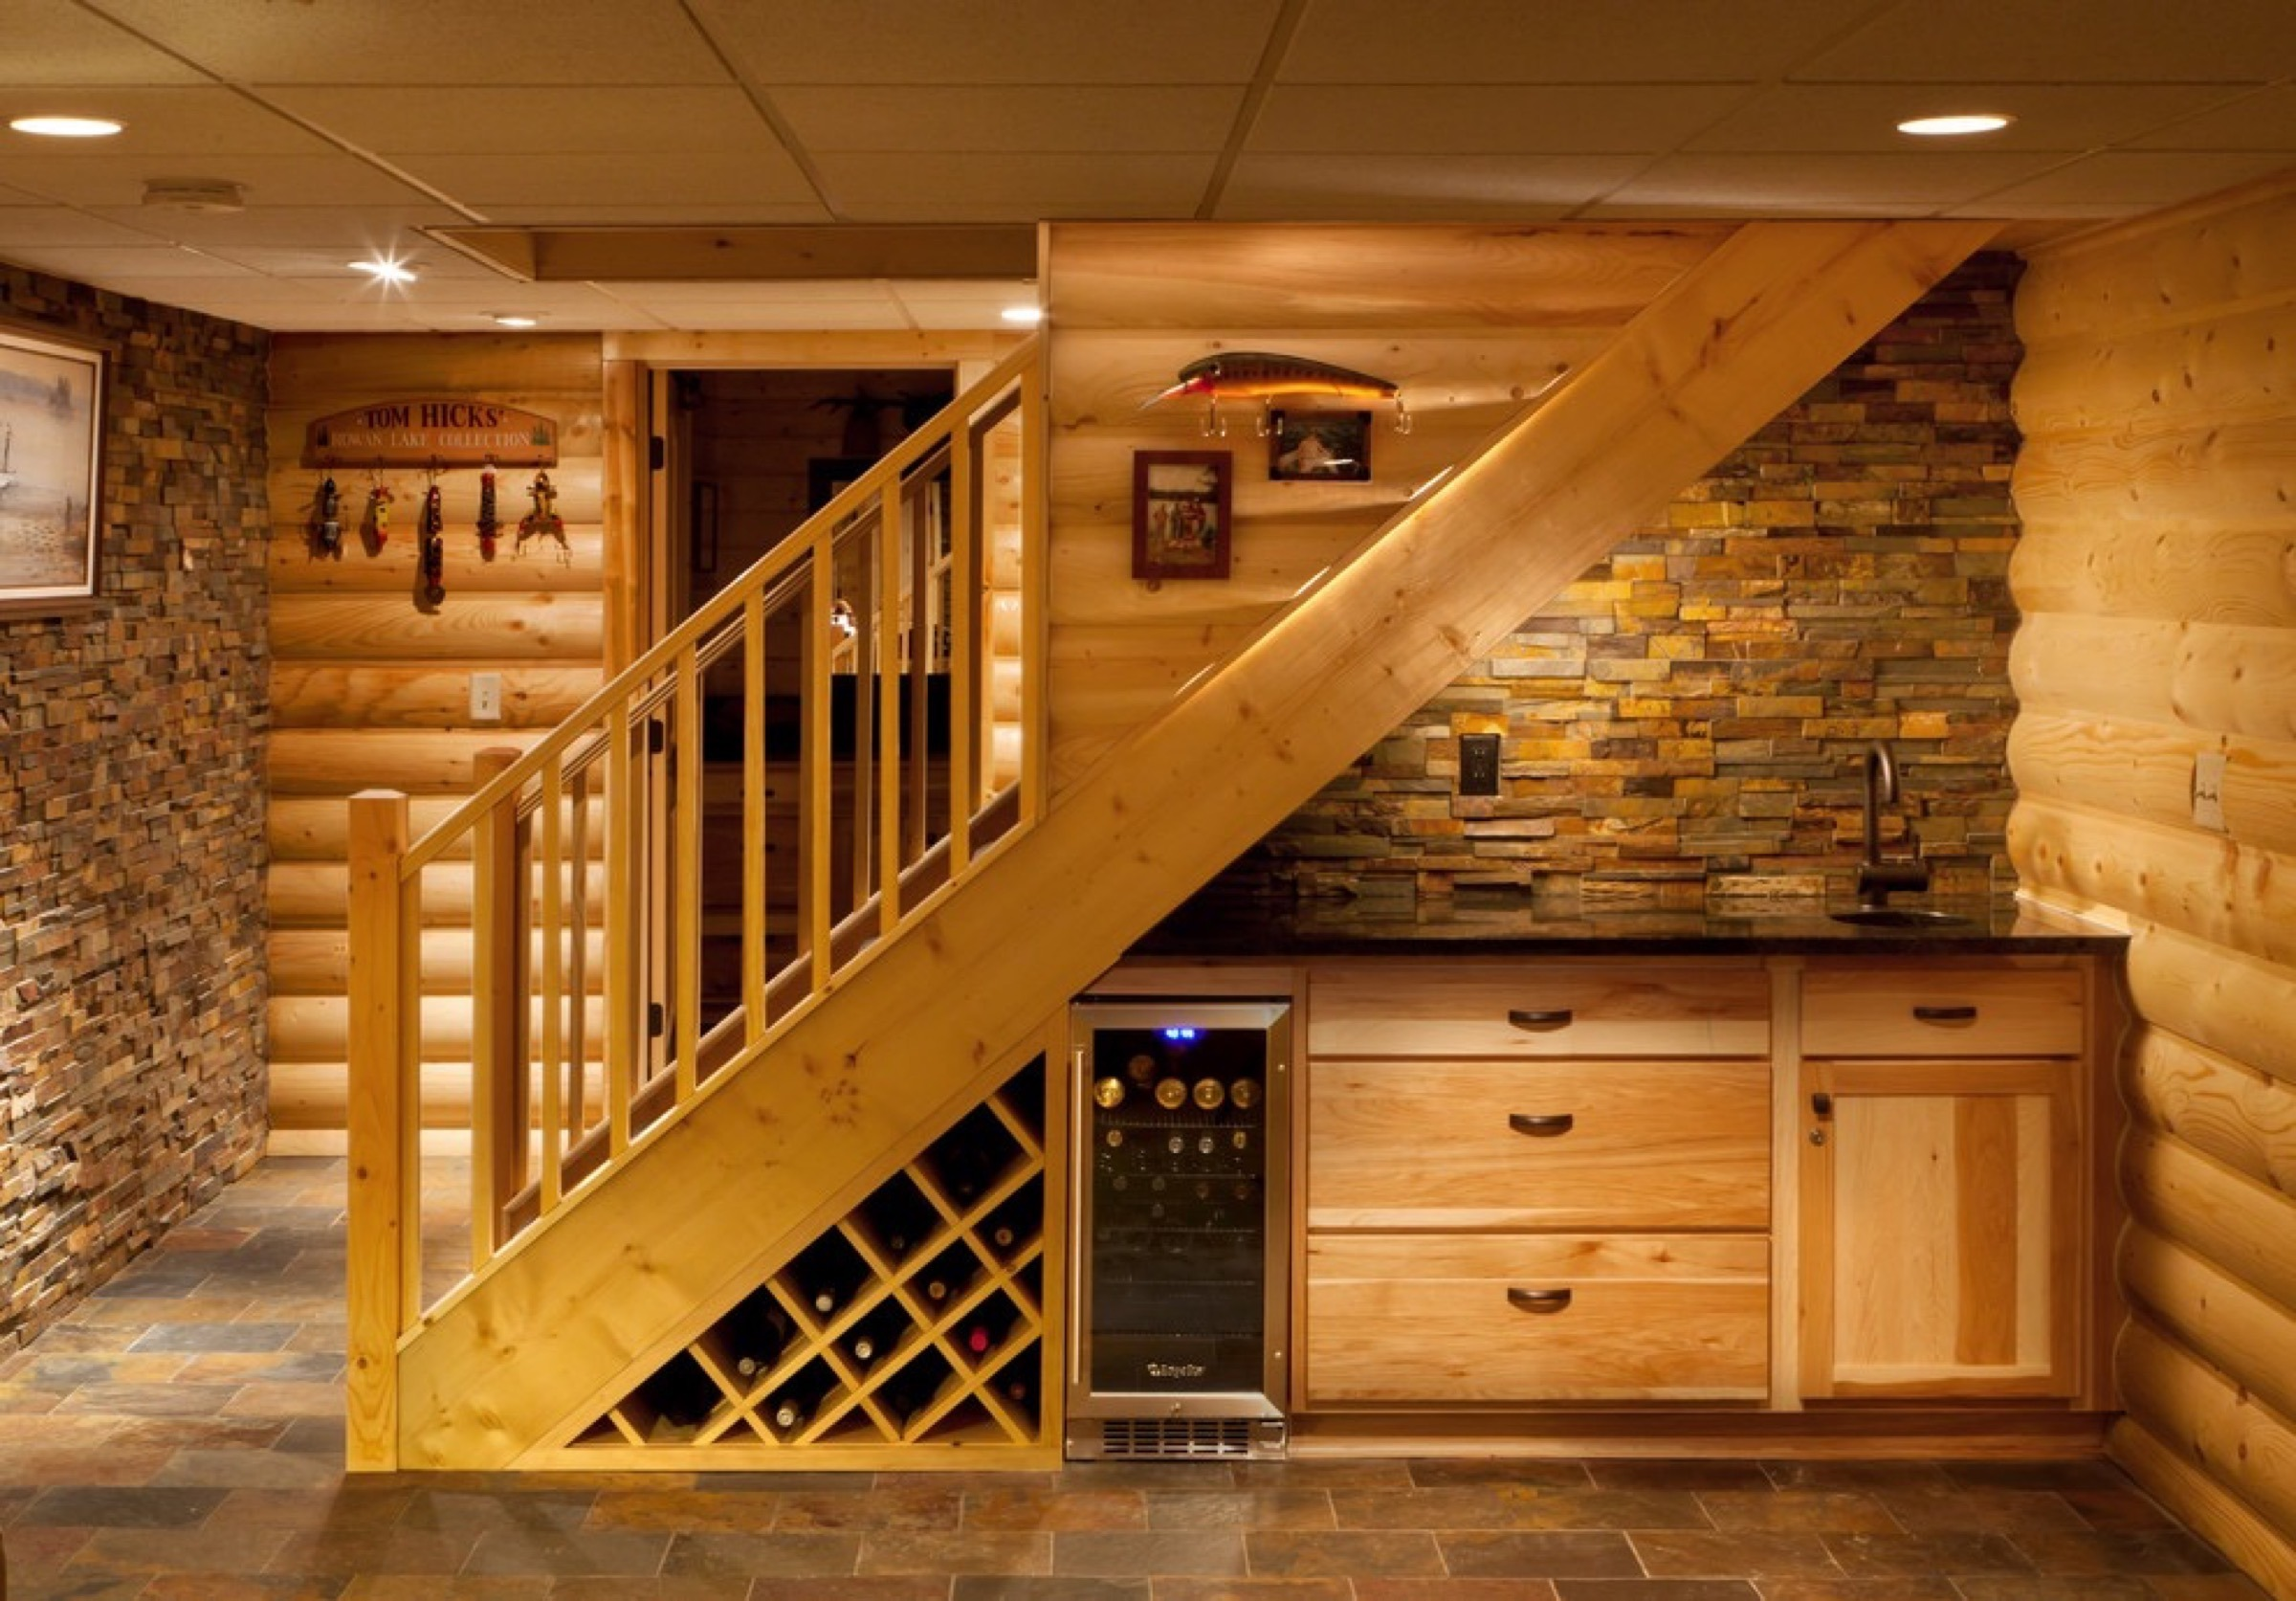 Basement staircase installation costs updated prices in 2018 for How much does it cost to build a wet bar